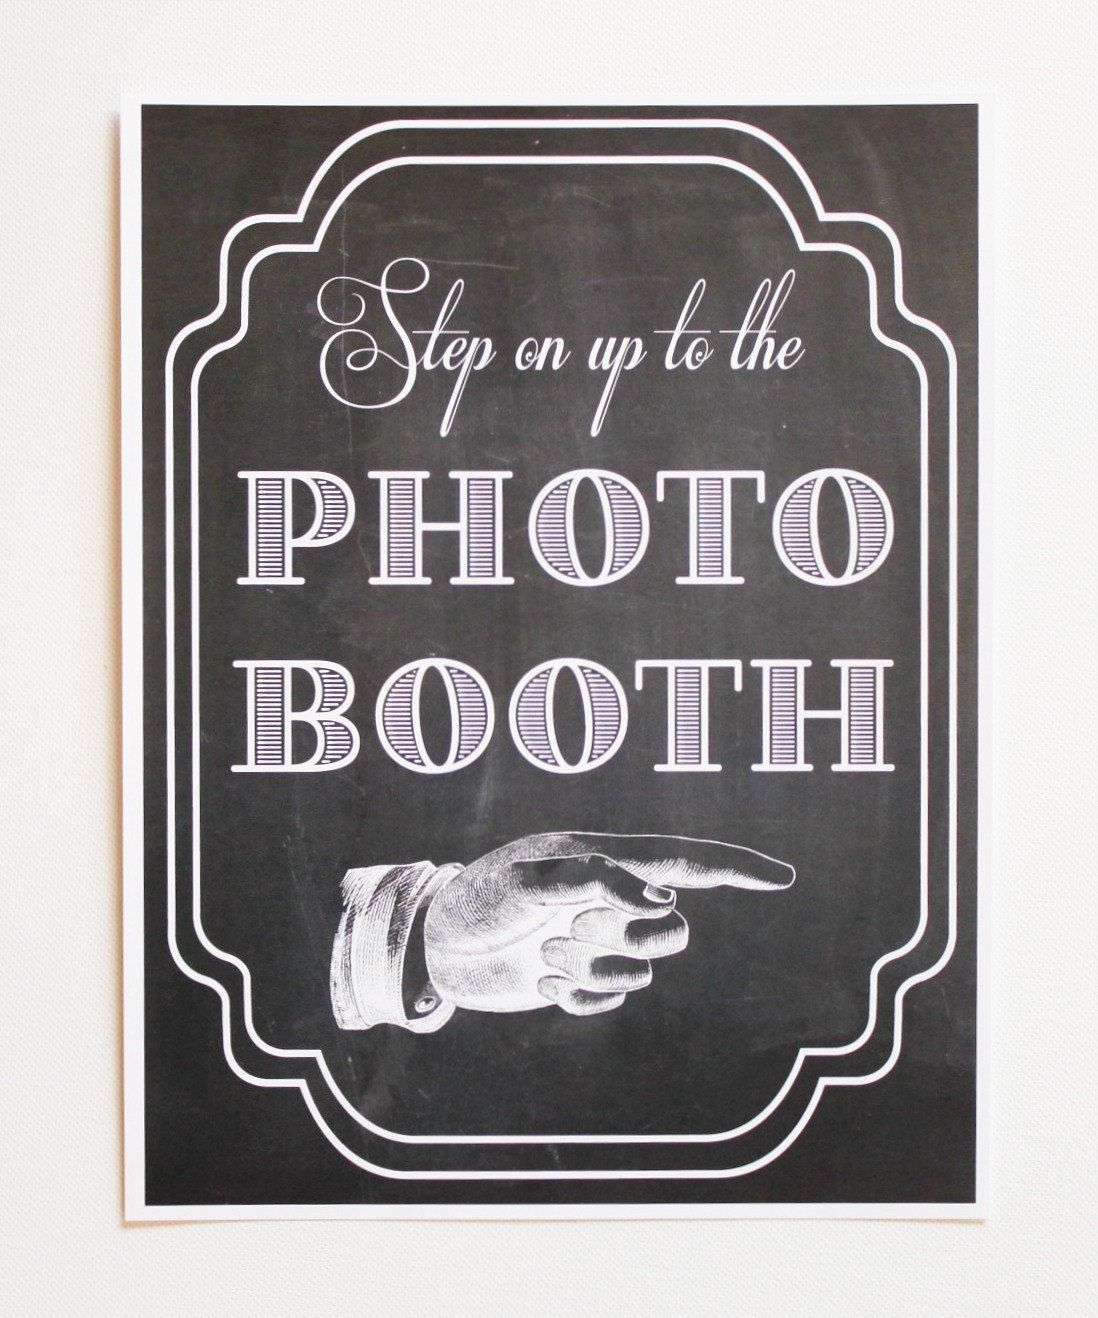 Printed Photo Booth Sign Prop Photobooth BoothChalkboard Wedding Reception Chalk